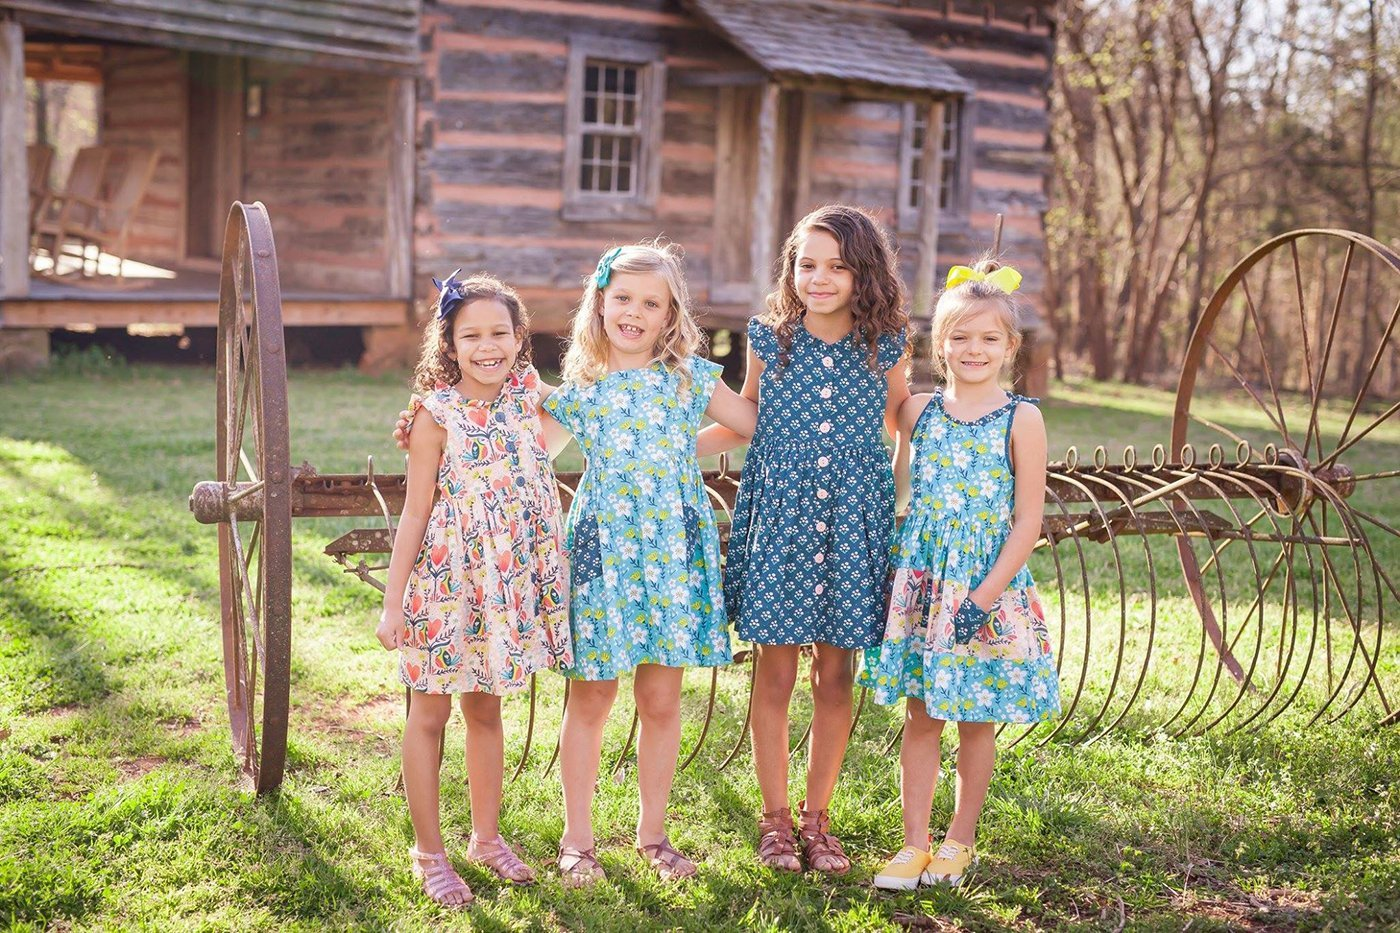 Children's Spring Dresses